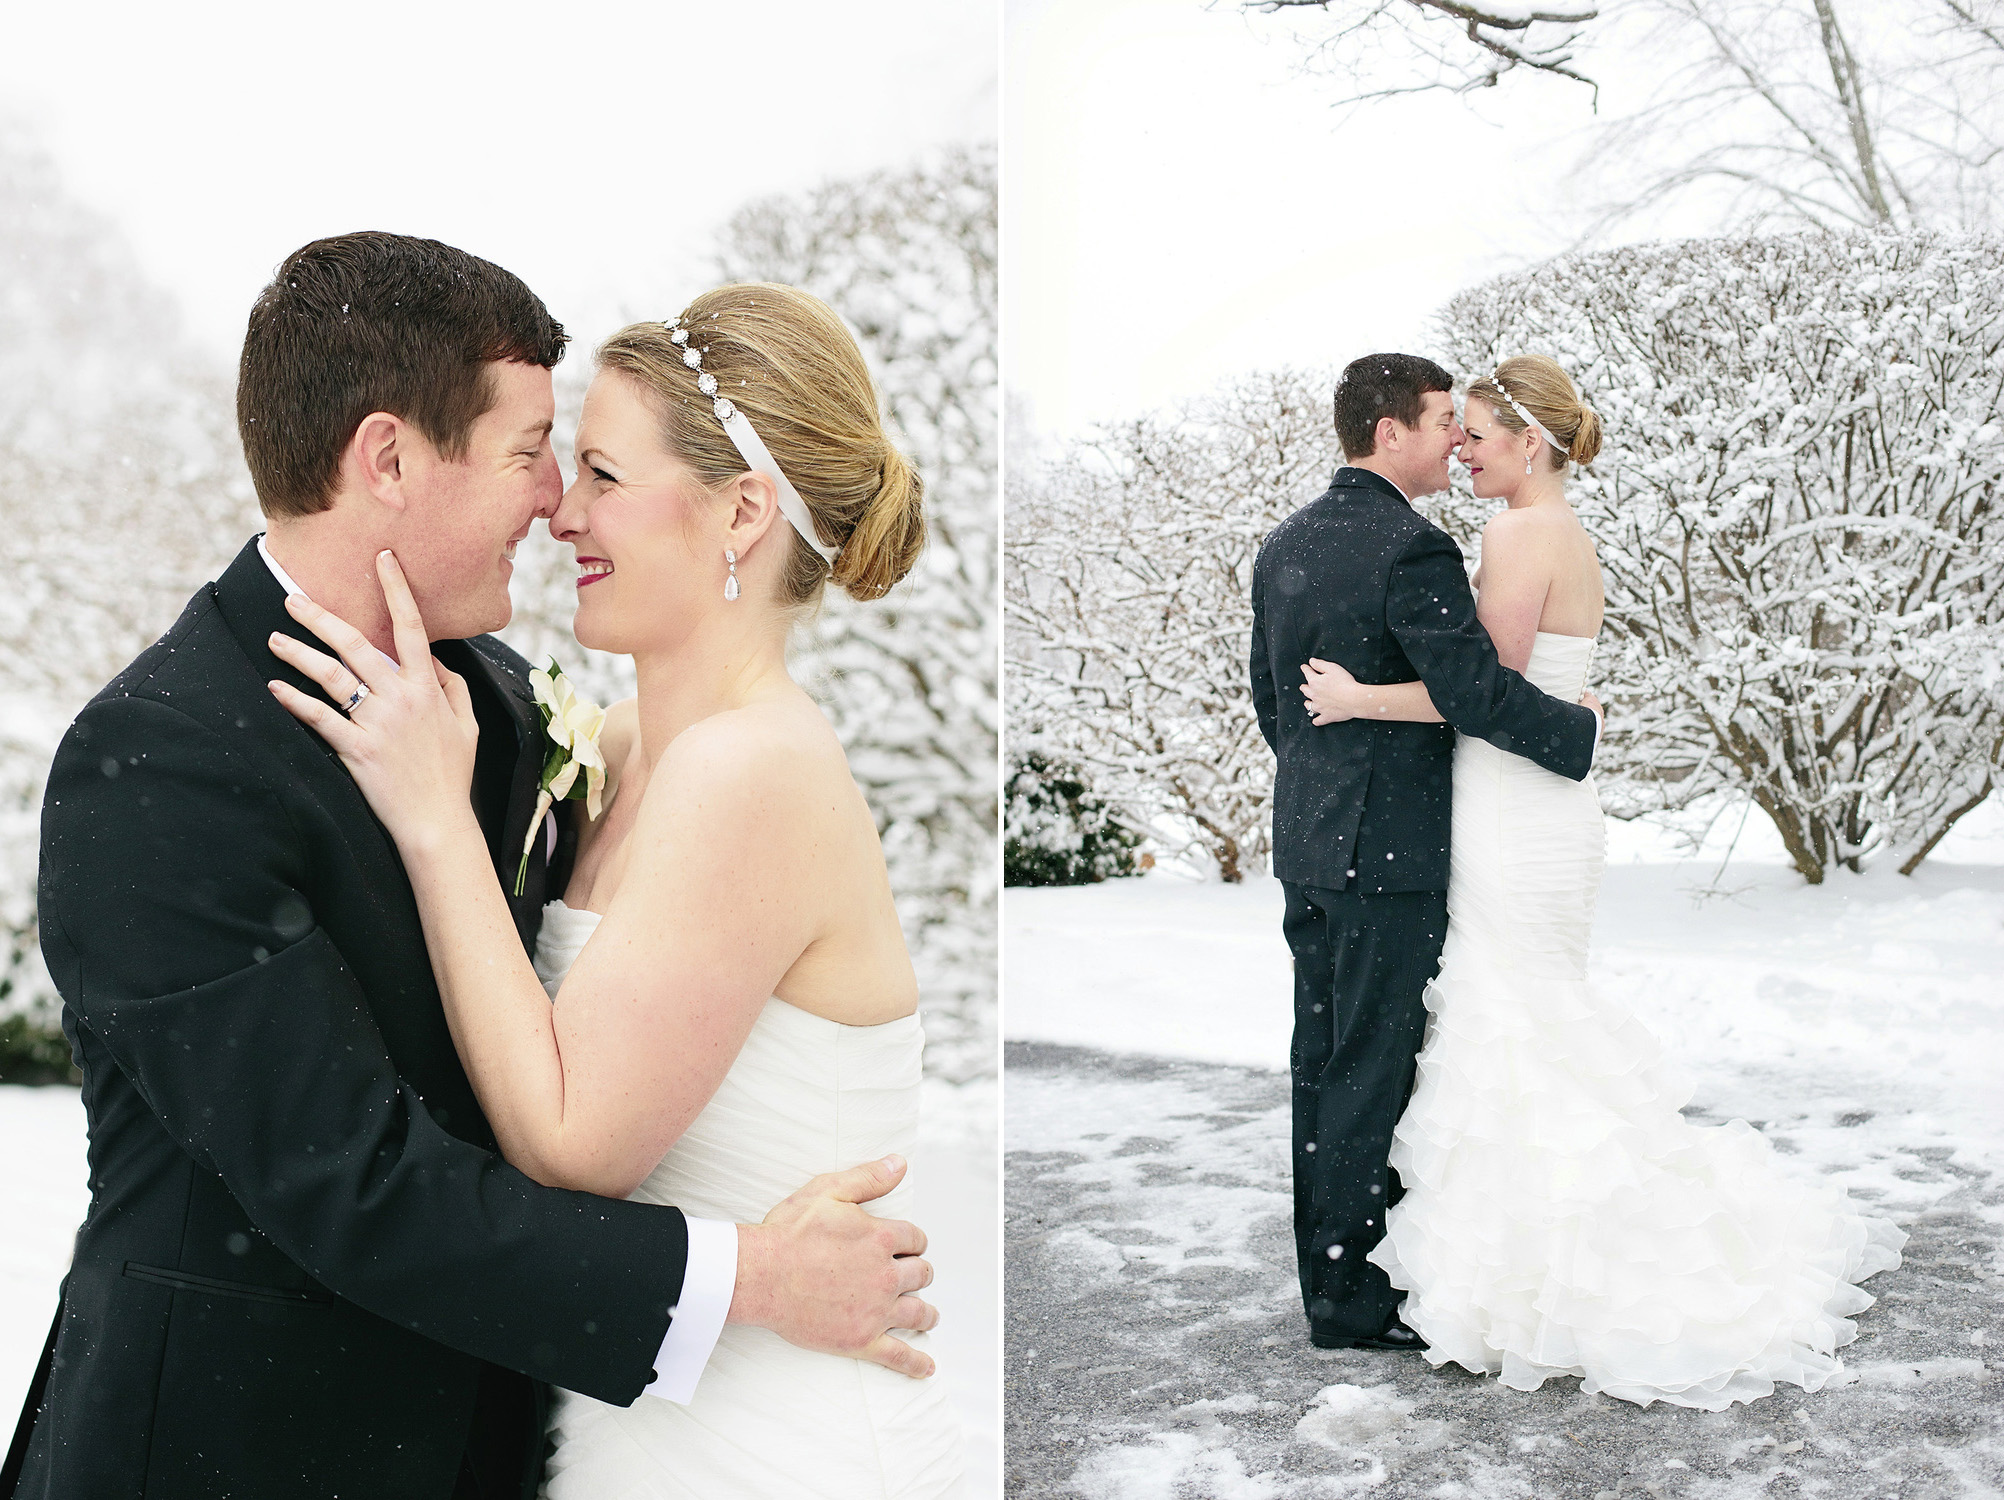 Radnor-Hunt-Club-Winter-Wedding-Philadelphia-Weddings-Magazine022.jpg